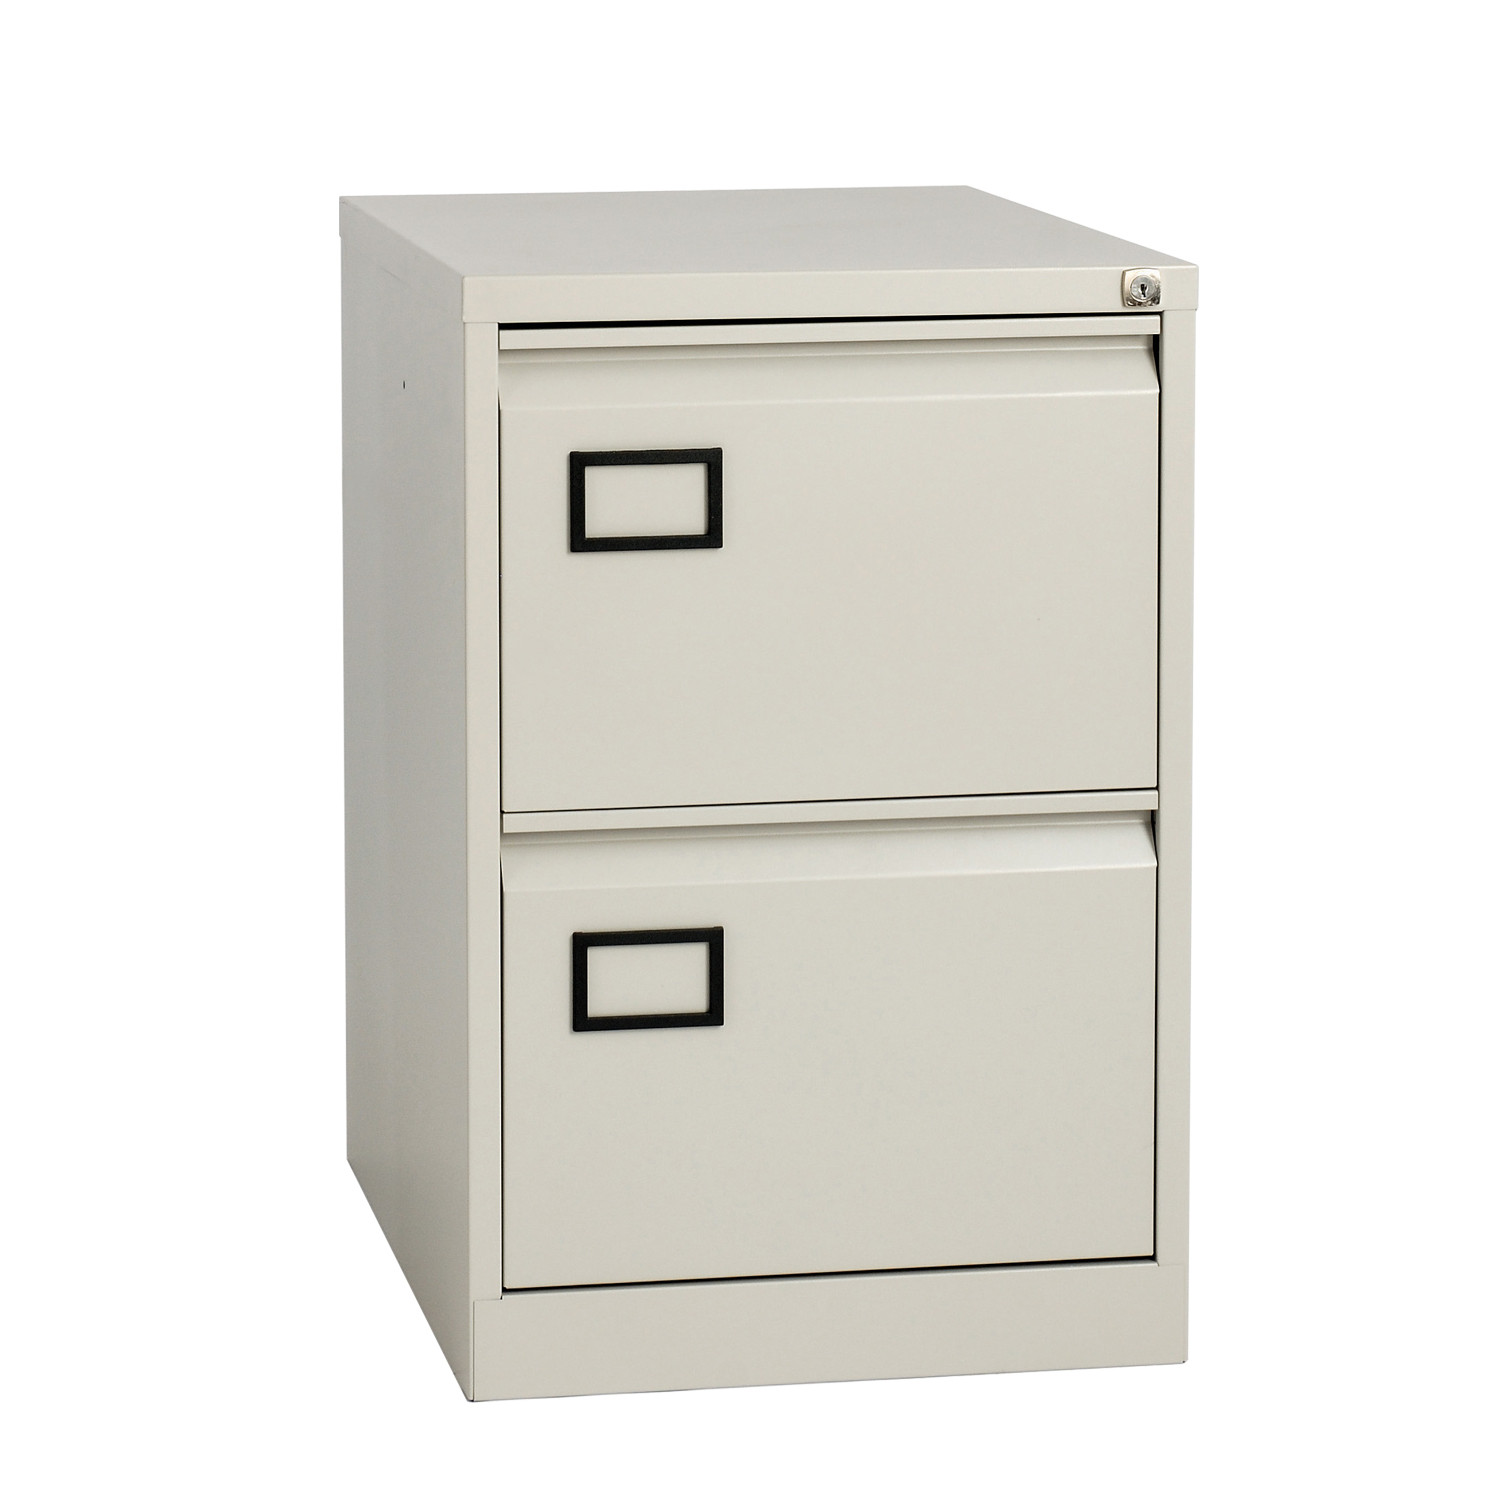 AOC 2 Drawer Filing Cabinet